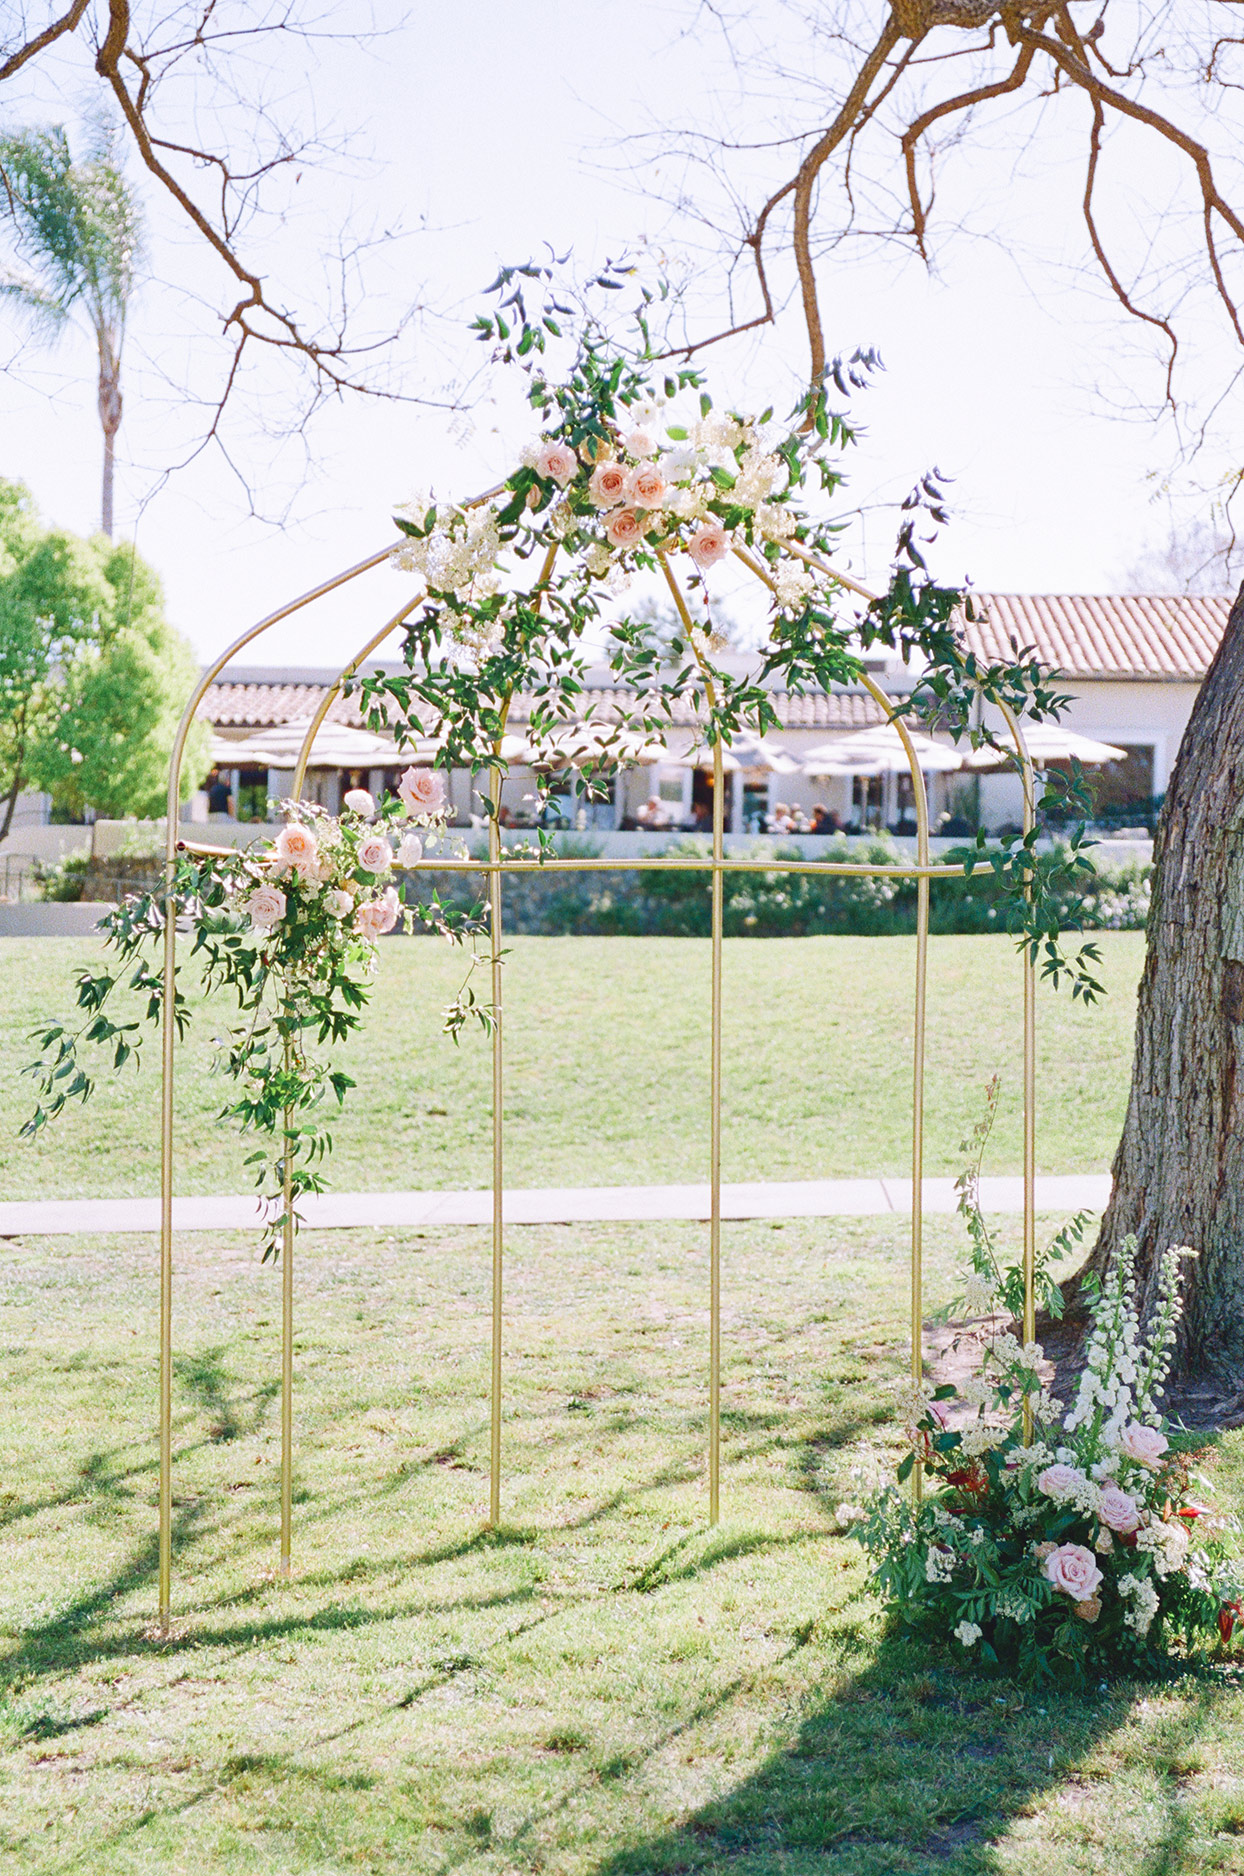 Outdoor wedding arch in a gold, birdcage-inspired style